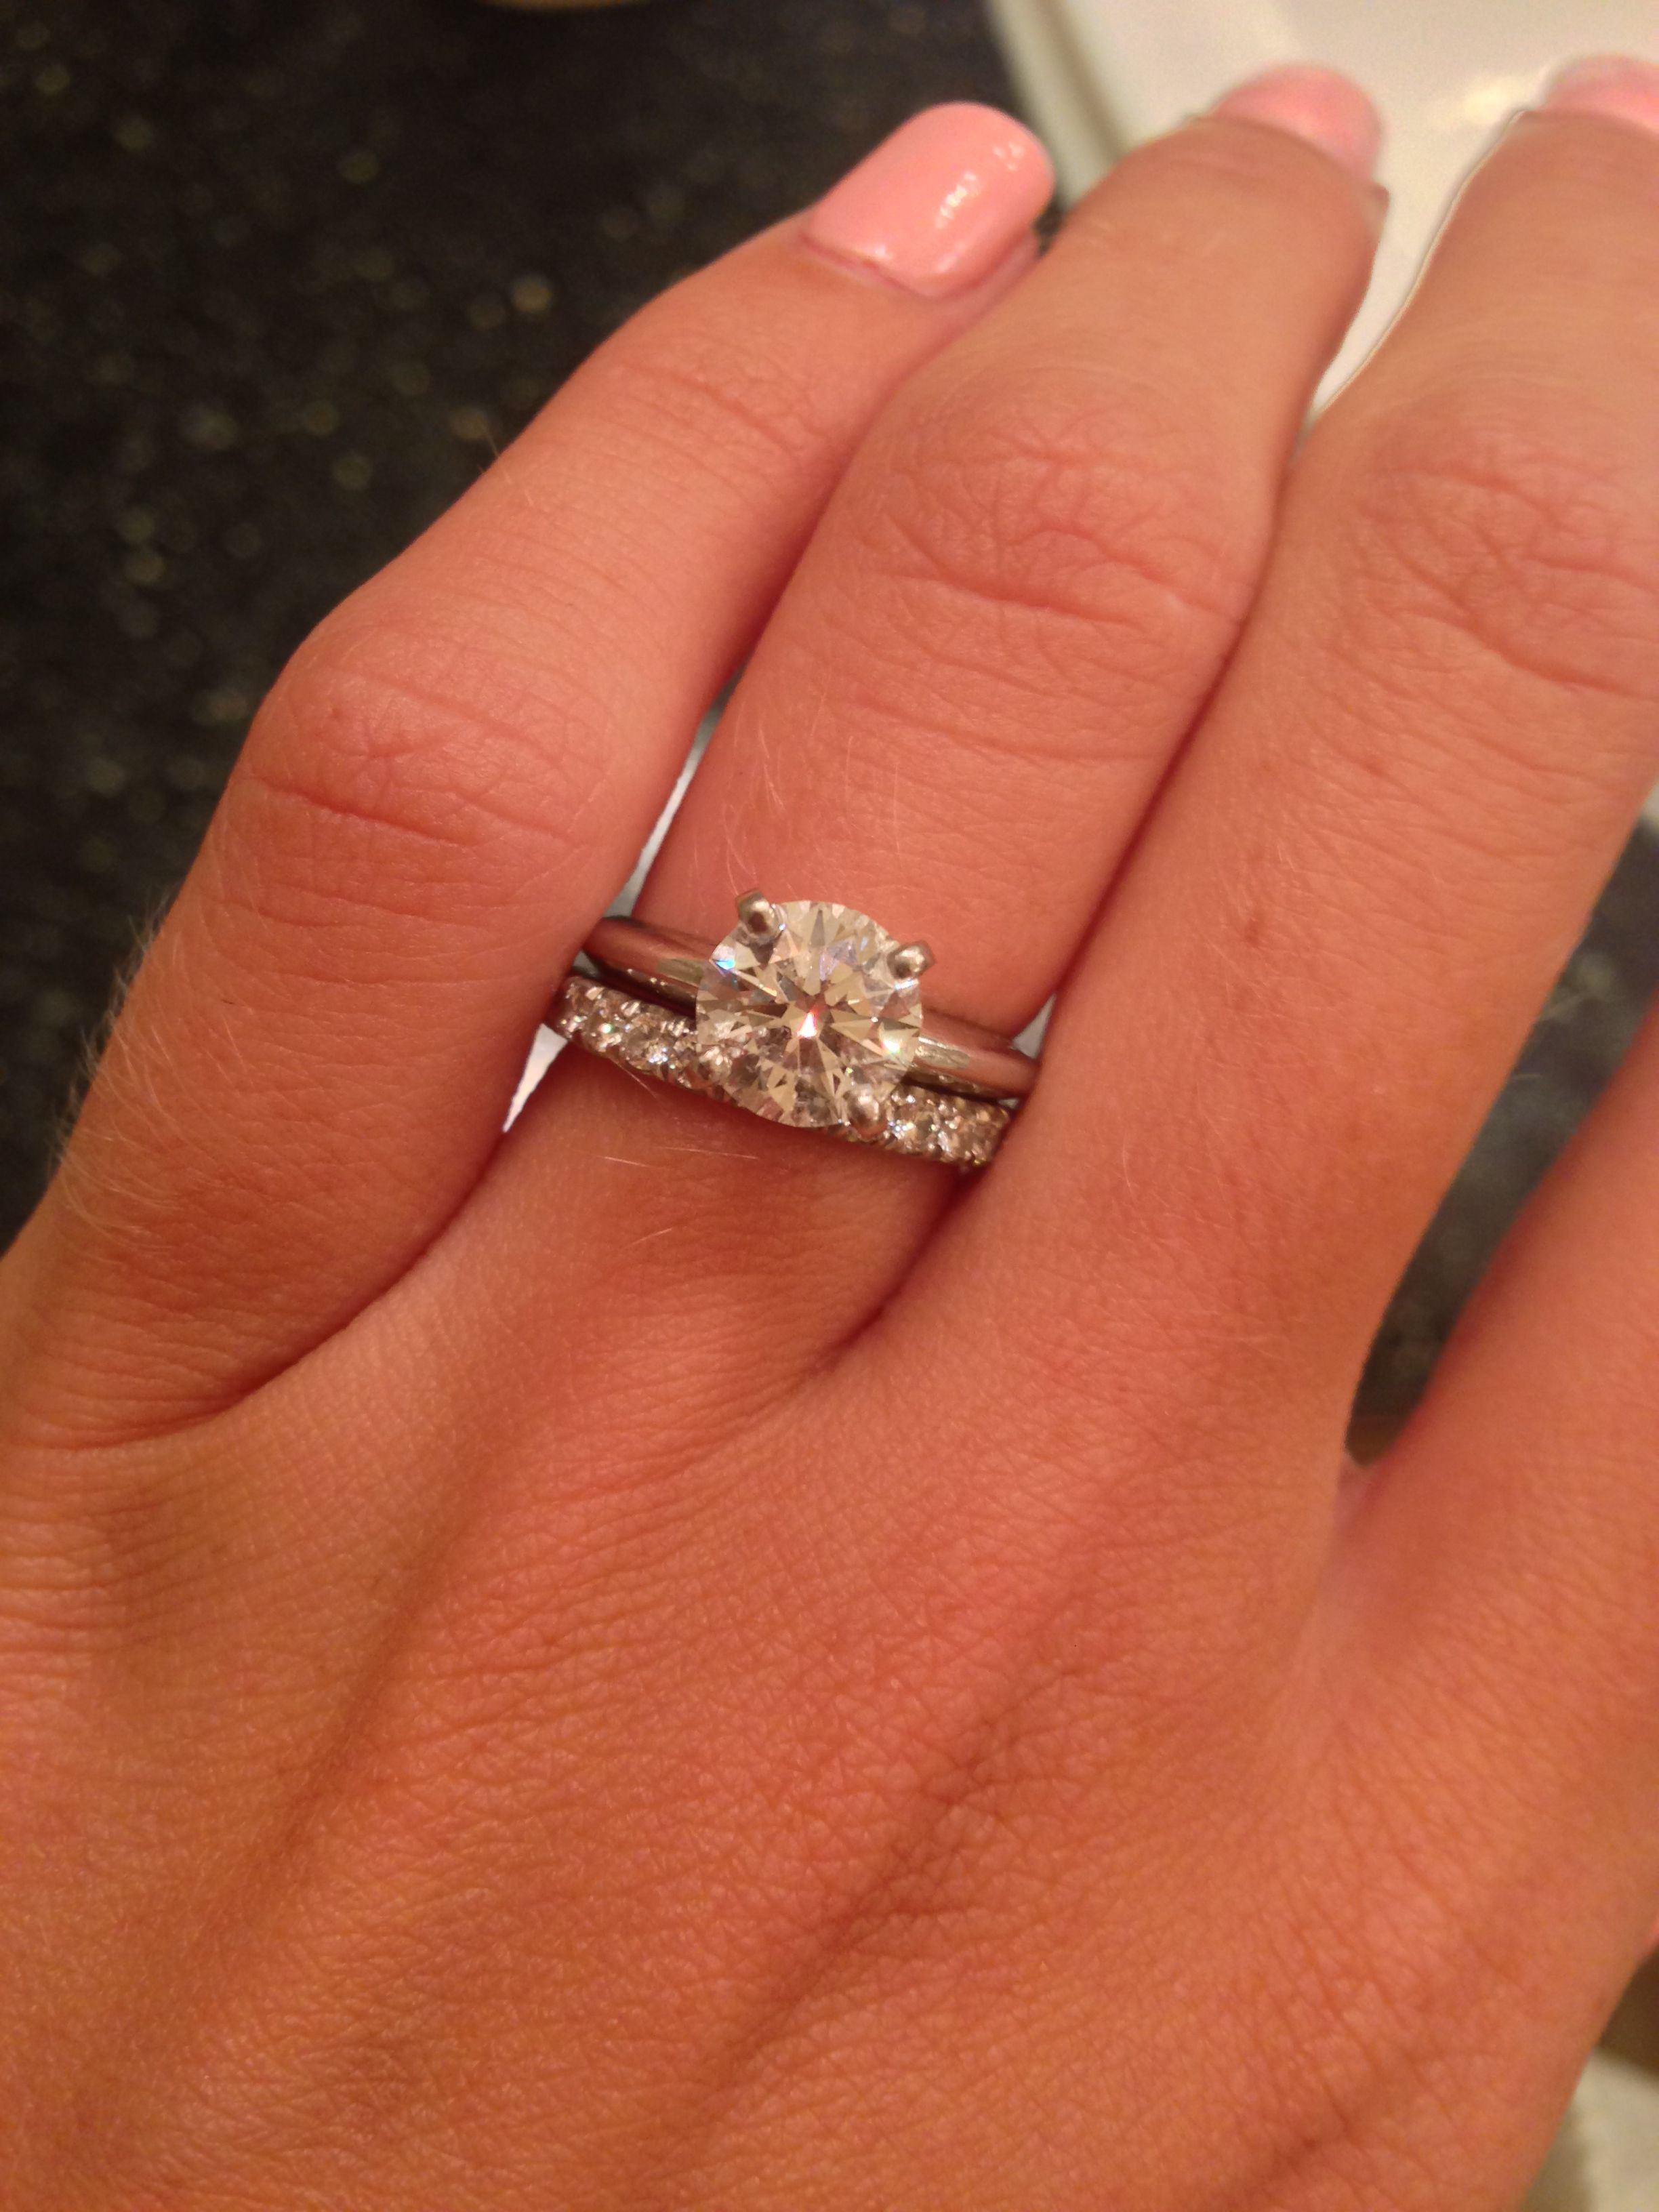 Show me your diamond wedding band with your solitaire e ring